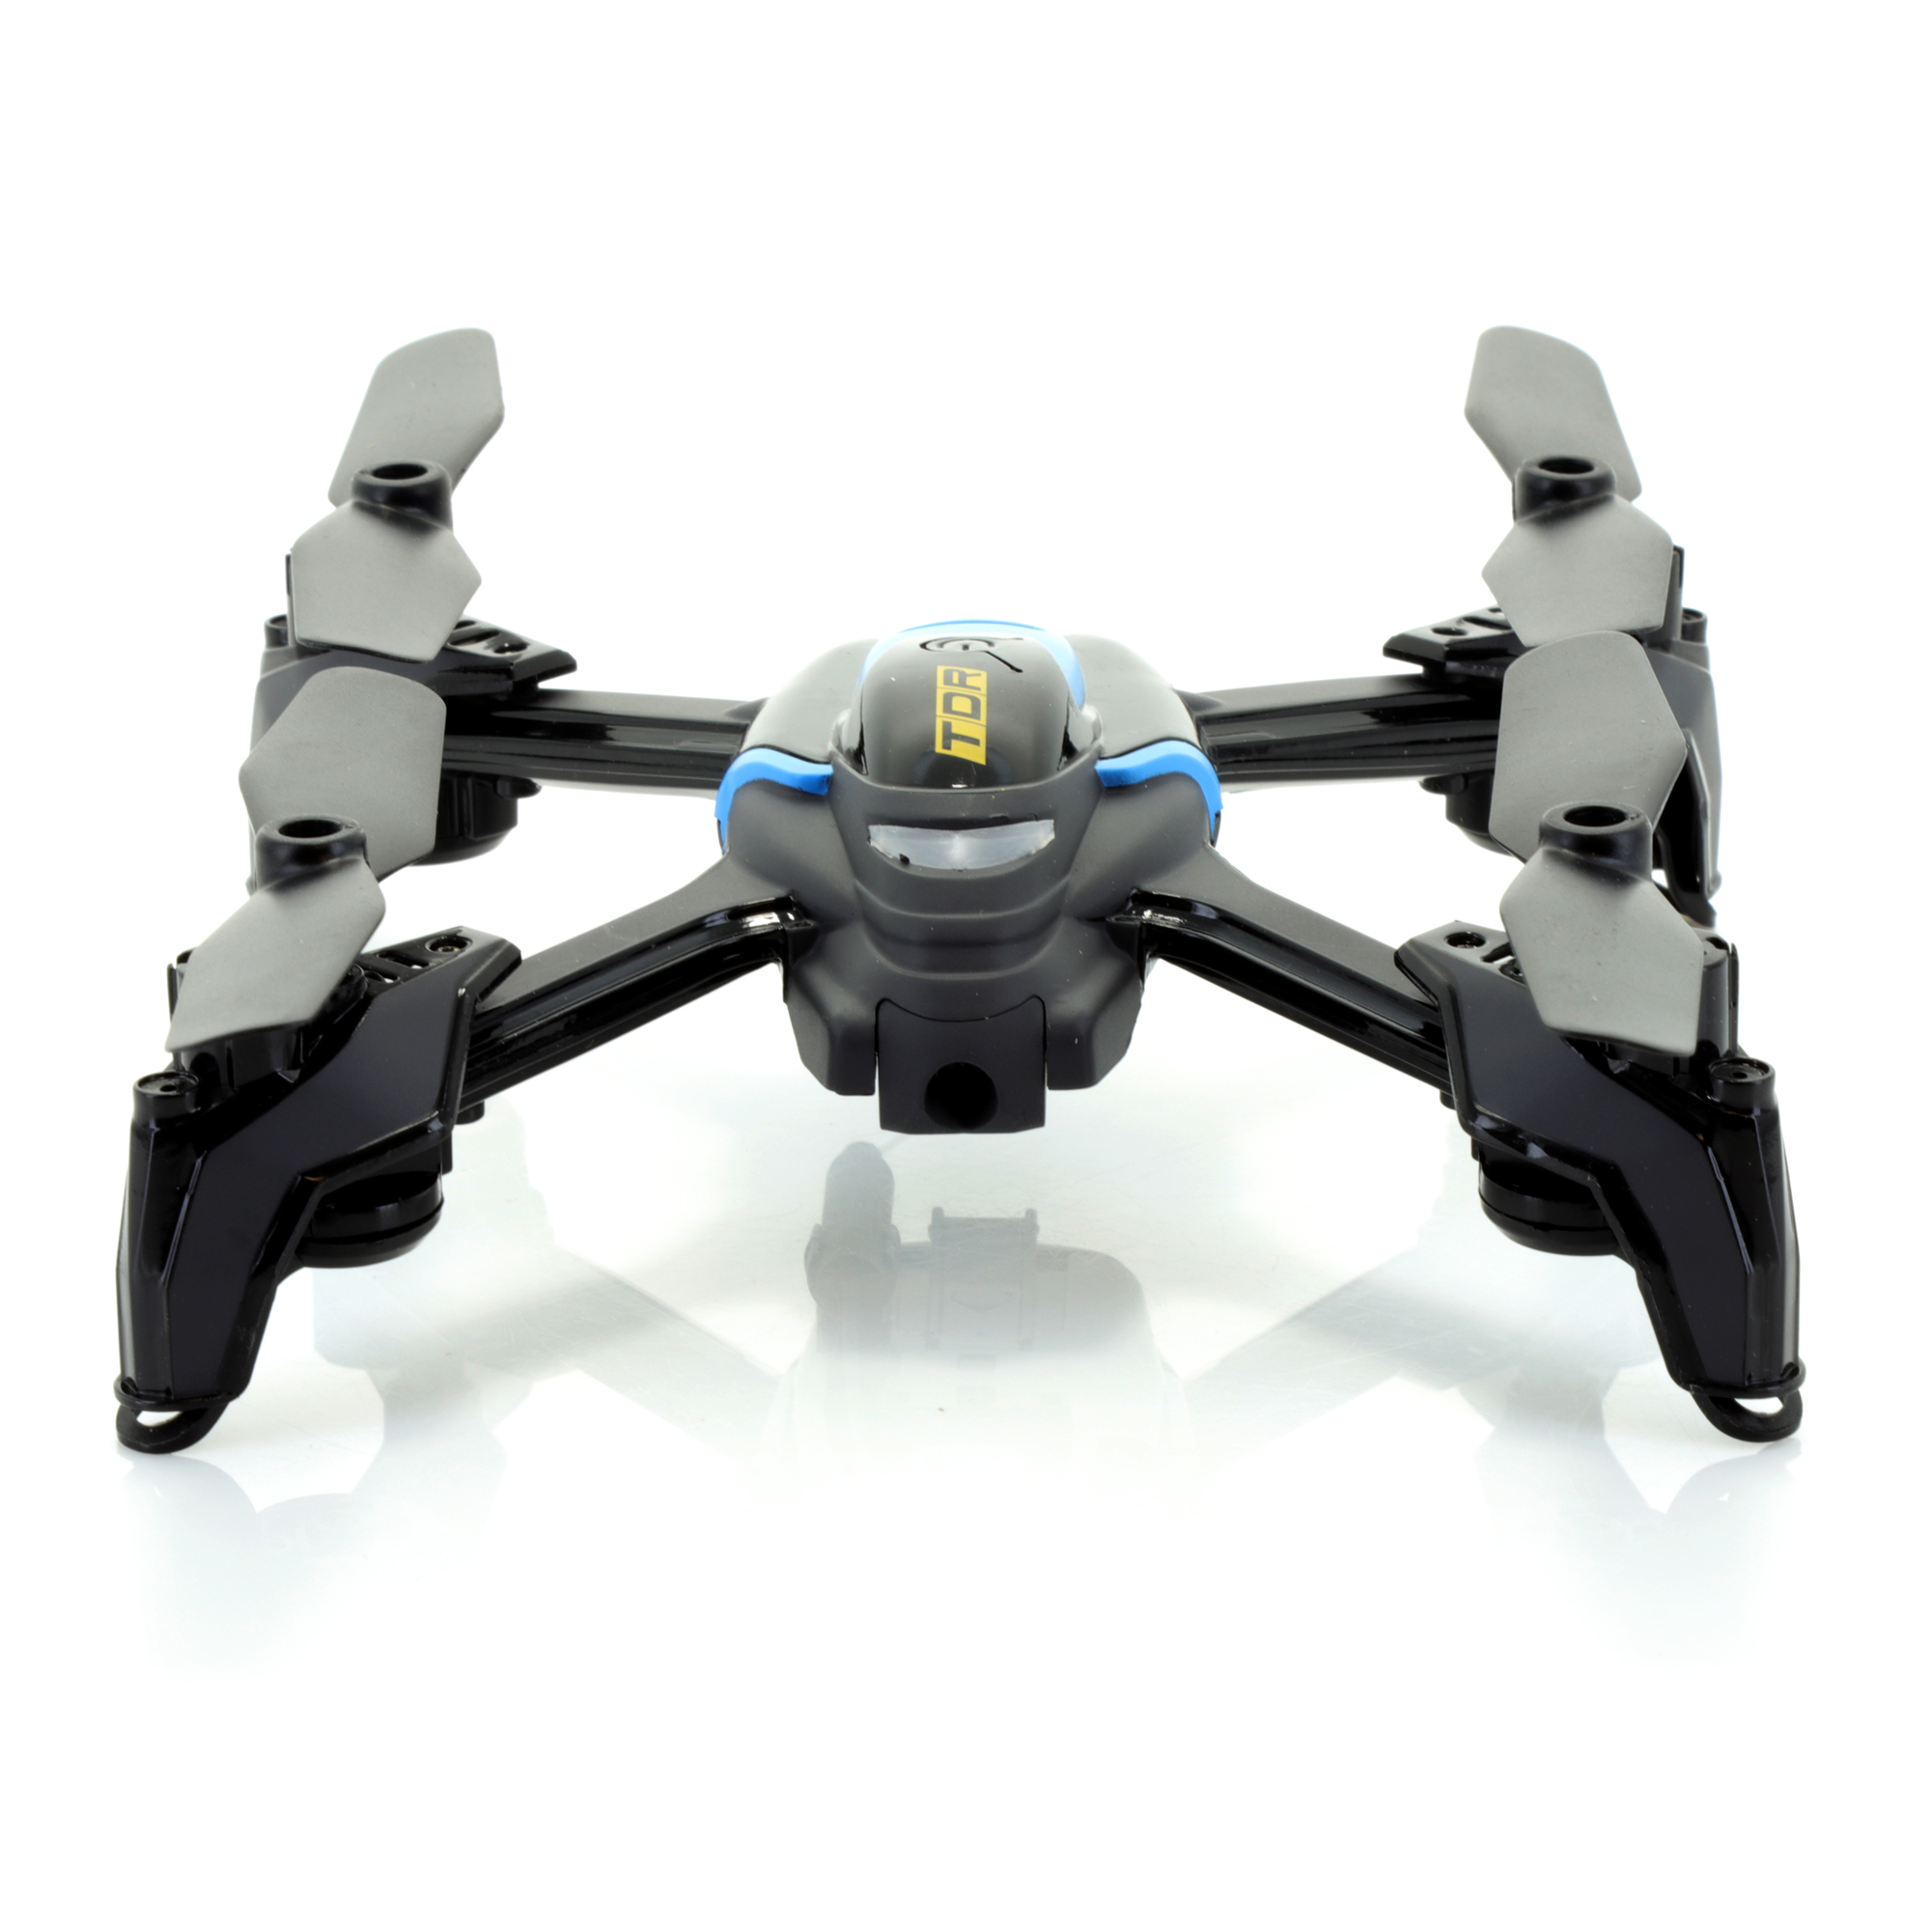 TDR Onyx Python Wifi FPV 2.4Ghz RC Quadcopter Drone with Camera